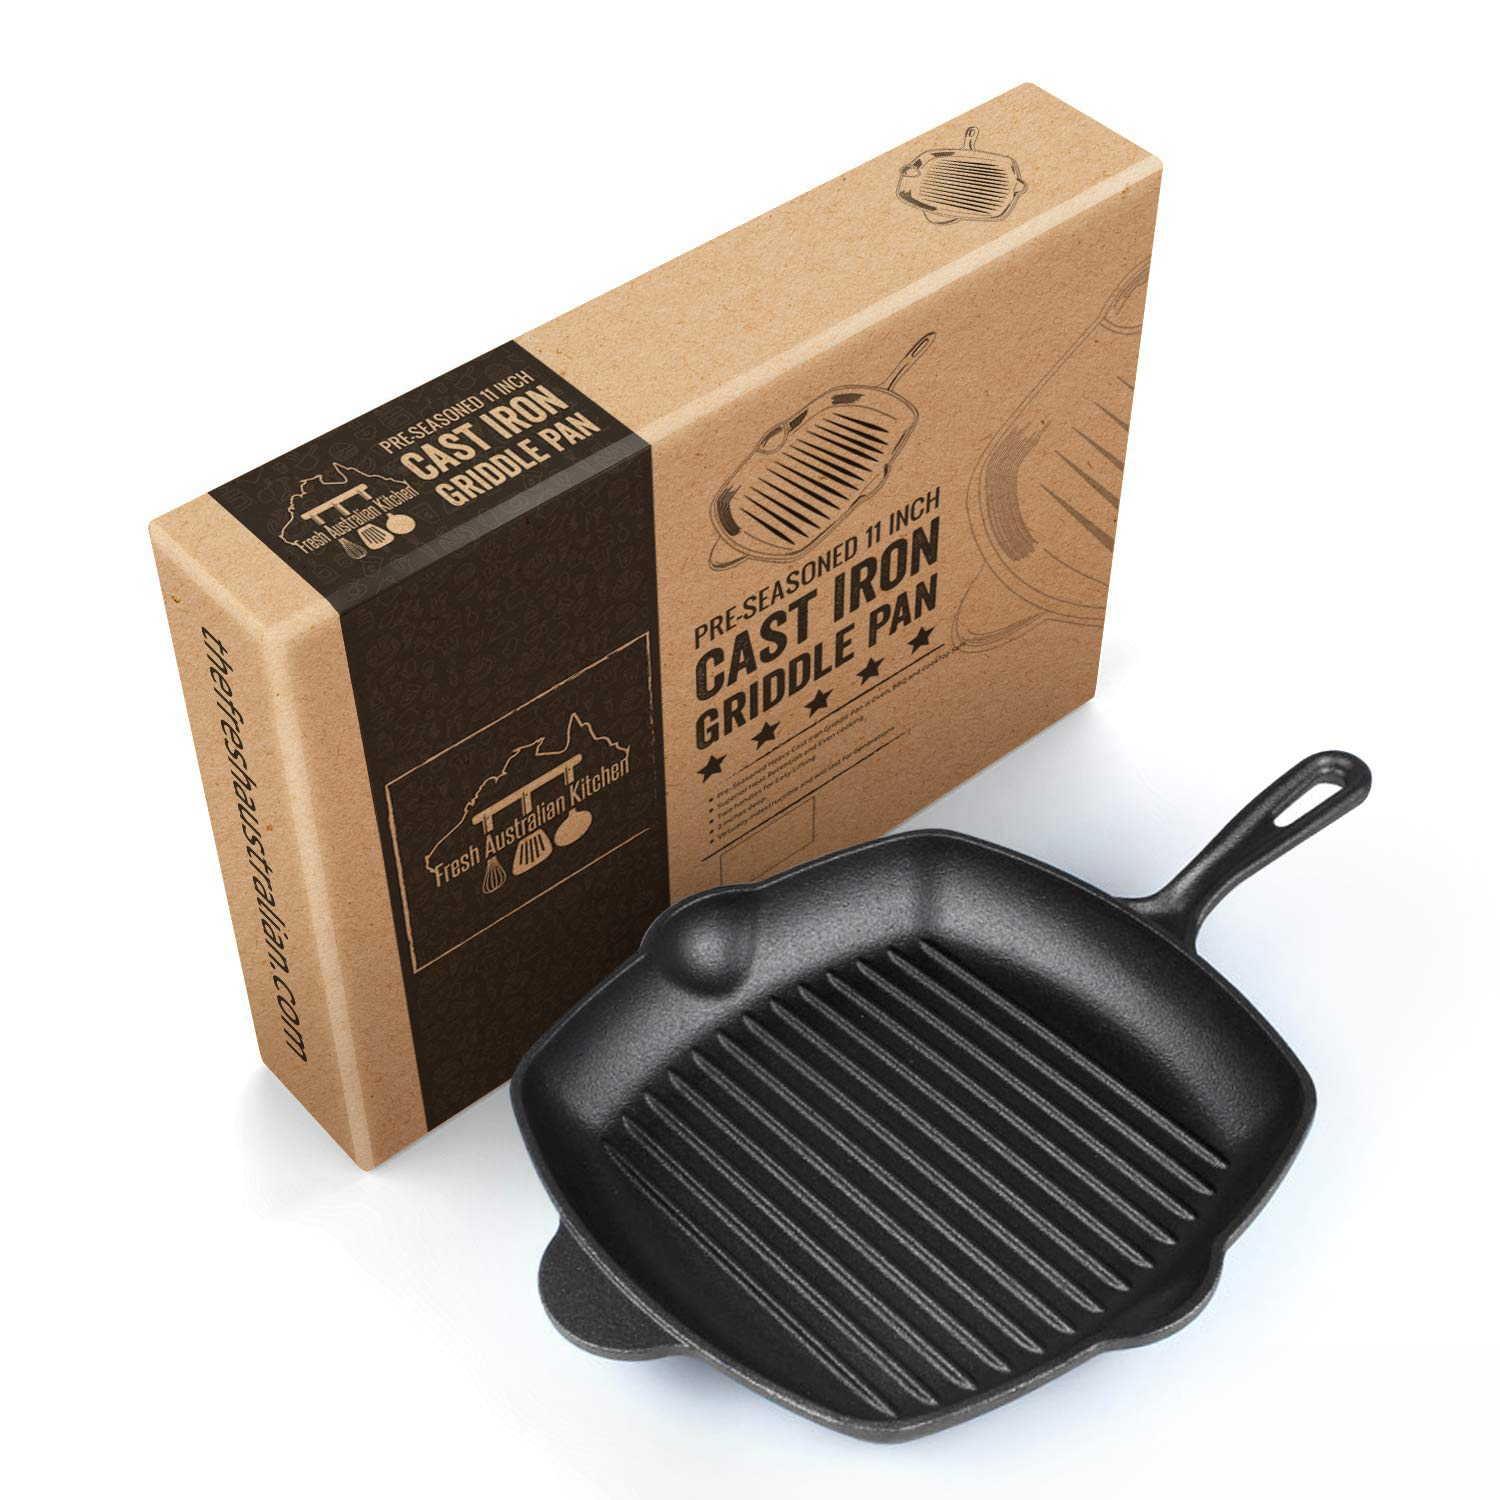 Pre-Seasoned Cast Iron Grill Skillet Pan 12 Inch (11 Inches Square). Stove and Oven Safe. For Camping and Barbecue. By Fresh Australian Kitchen.